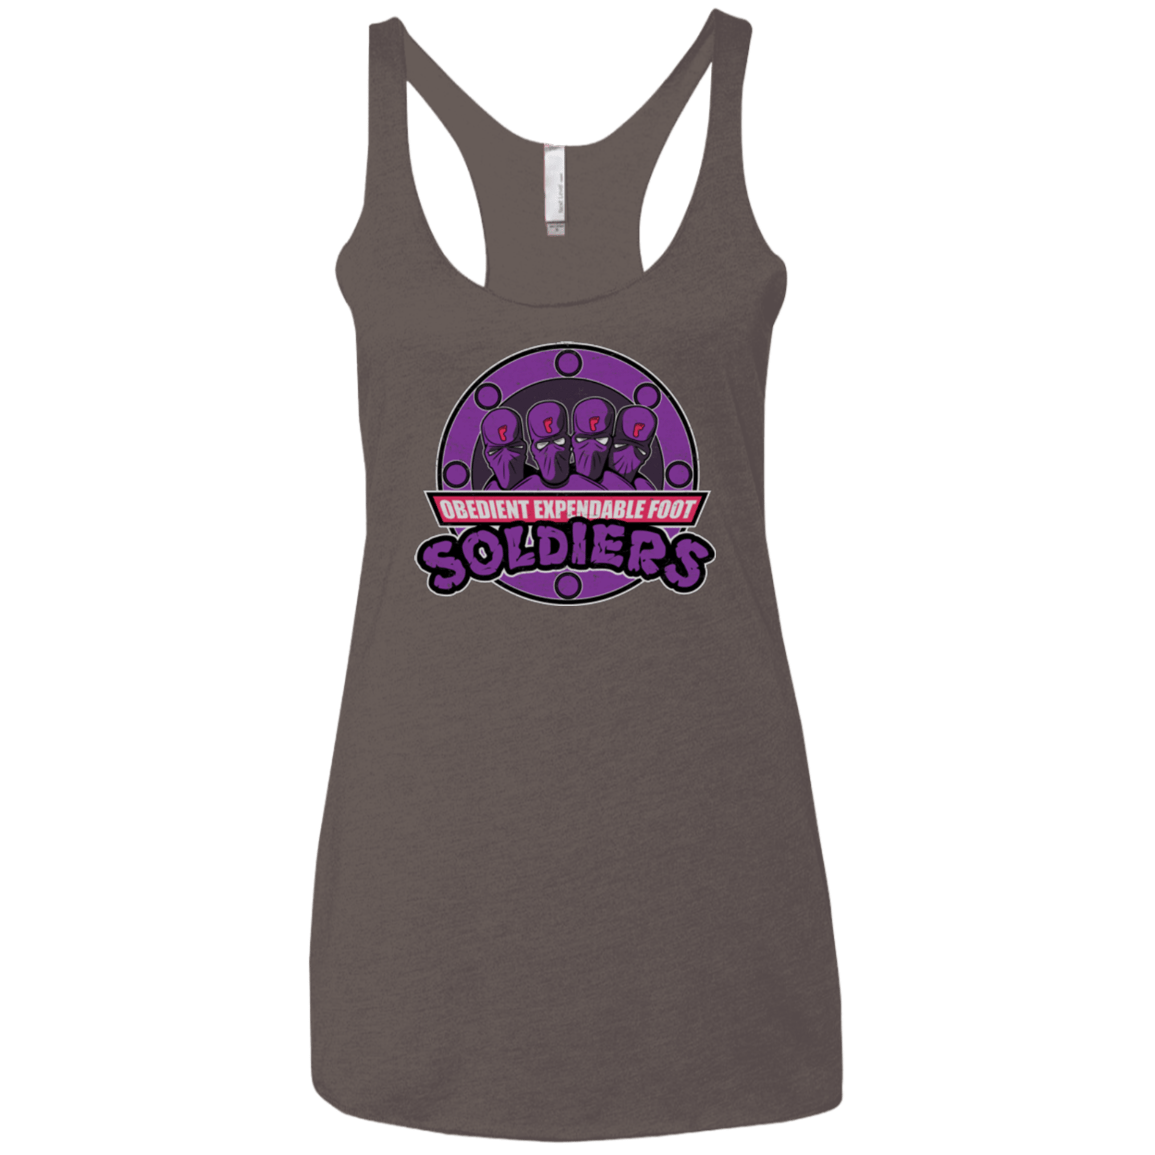 T-Shirts Macchiato / X-Small OBEDIENT EXPENDABLE FOOT SOLDIERS Women's Triblend Racerback Tank